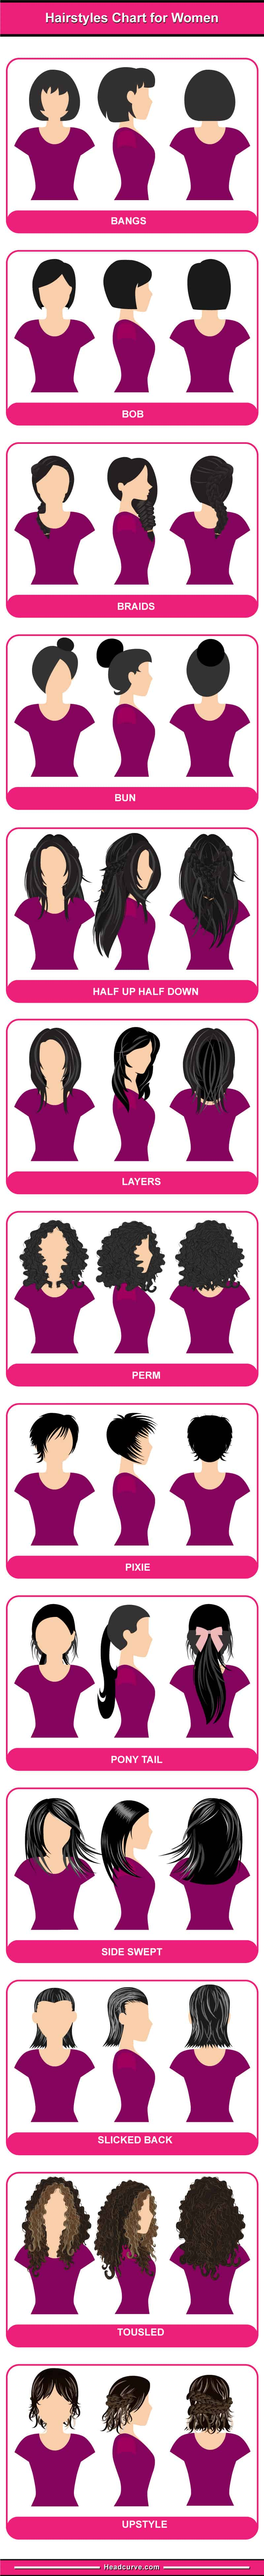 Women's hairstyles chart with diagrams